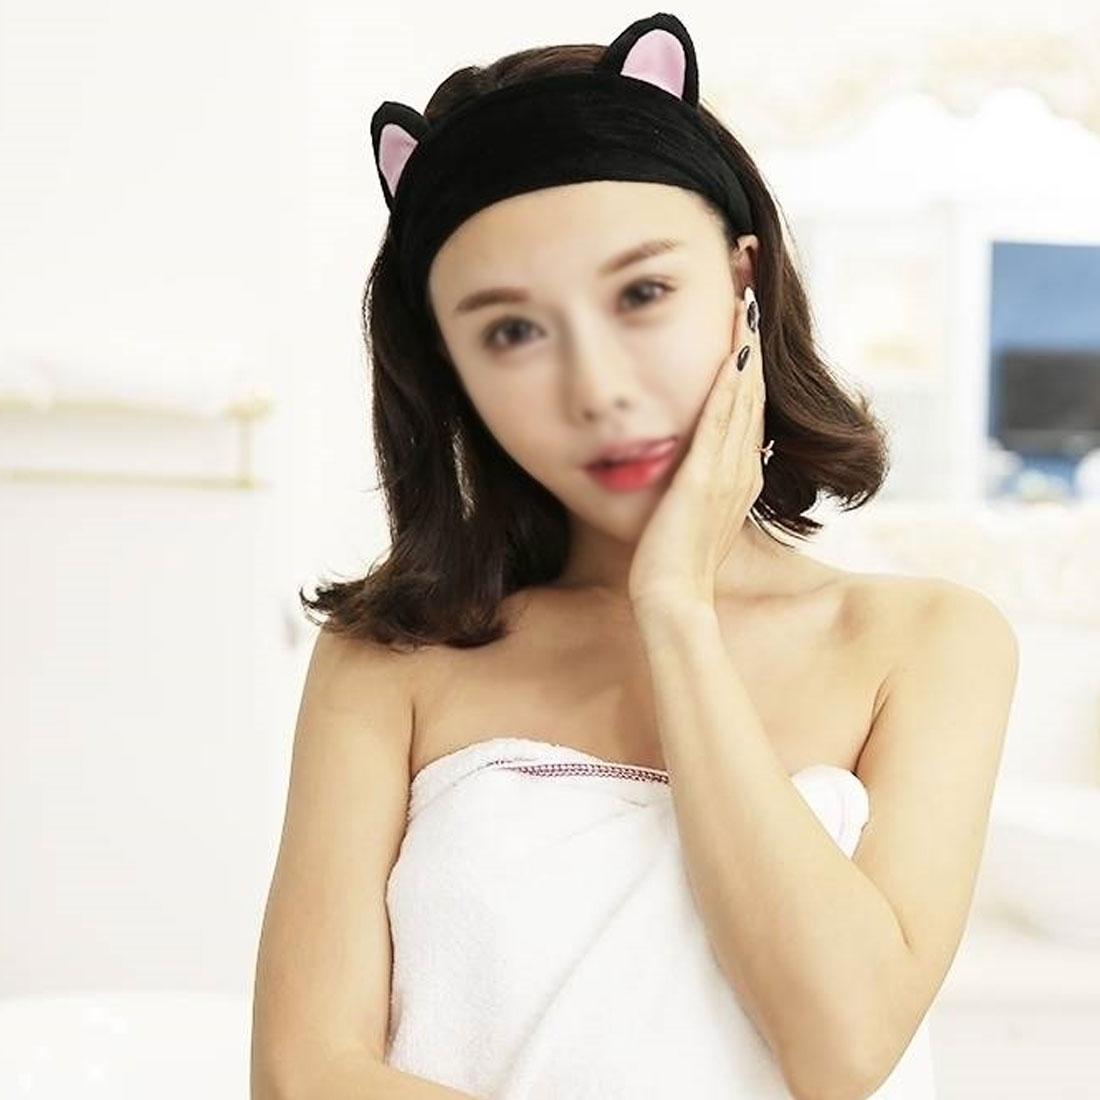 fashion New 1PC 5 Color Cotton Cute Cat Ear Face Washing Head band SPA Make Up Turban Hairband Rabbit Ears Hair Bands in Women 39 s Hair Accessories from Apparel Accessories